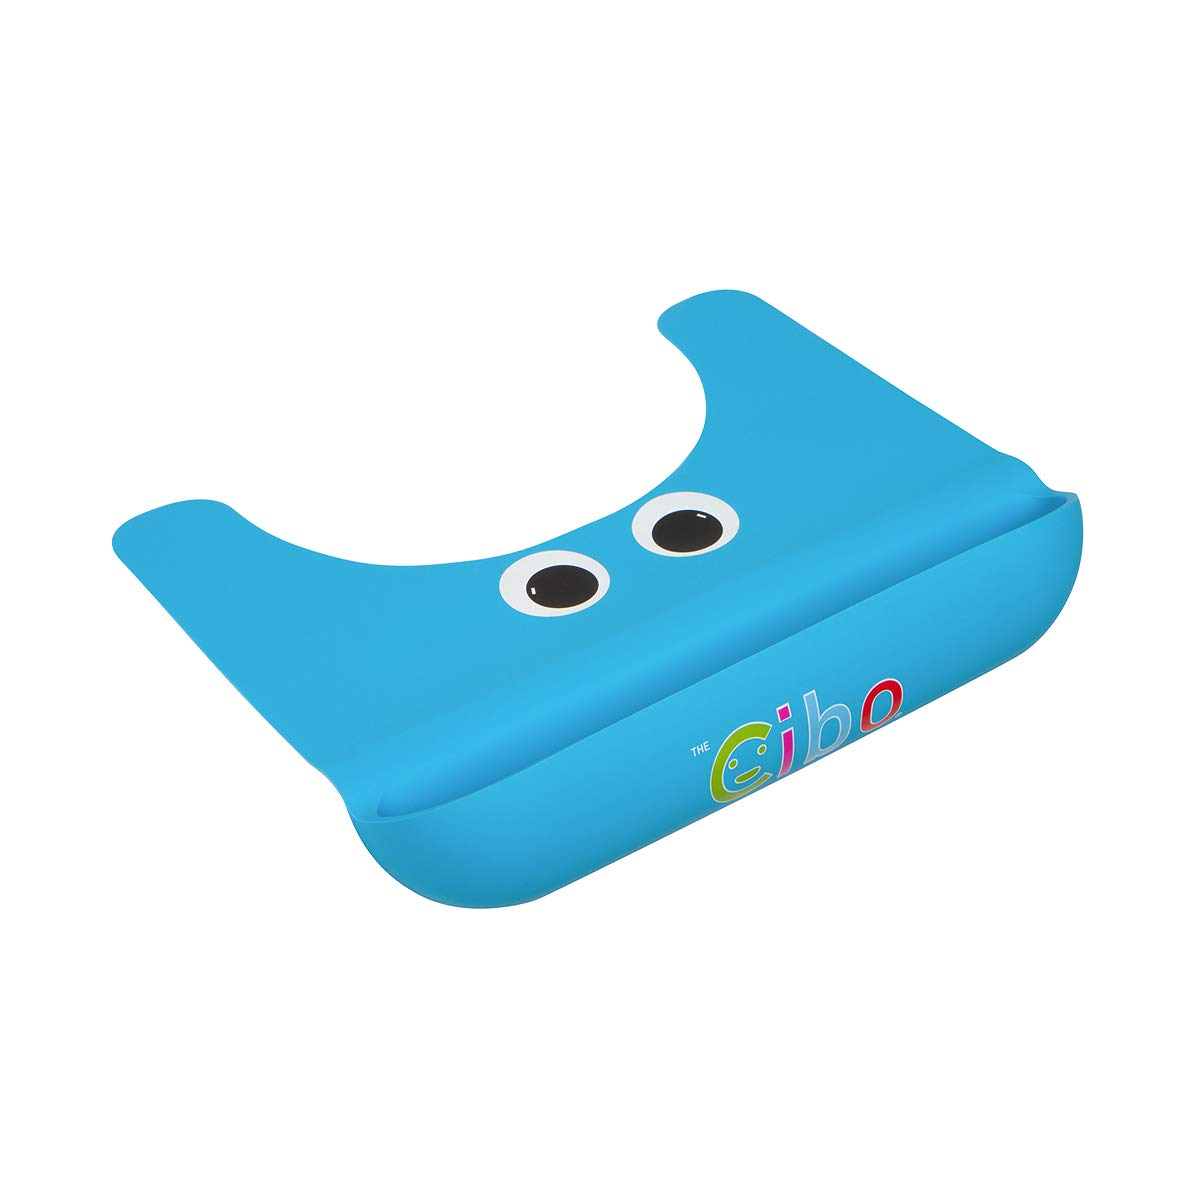 The Cibo Crumb-Catching Silicone Placemat and Feeding Mat for Babies and Toddlers, for Mess-Free Eating During Meals and Crafts, Keeps Table and Floor Tidy, Non-Toxic, Washable, Rinses Clean